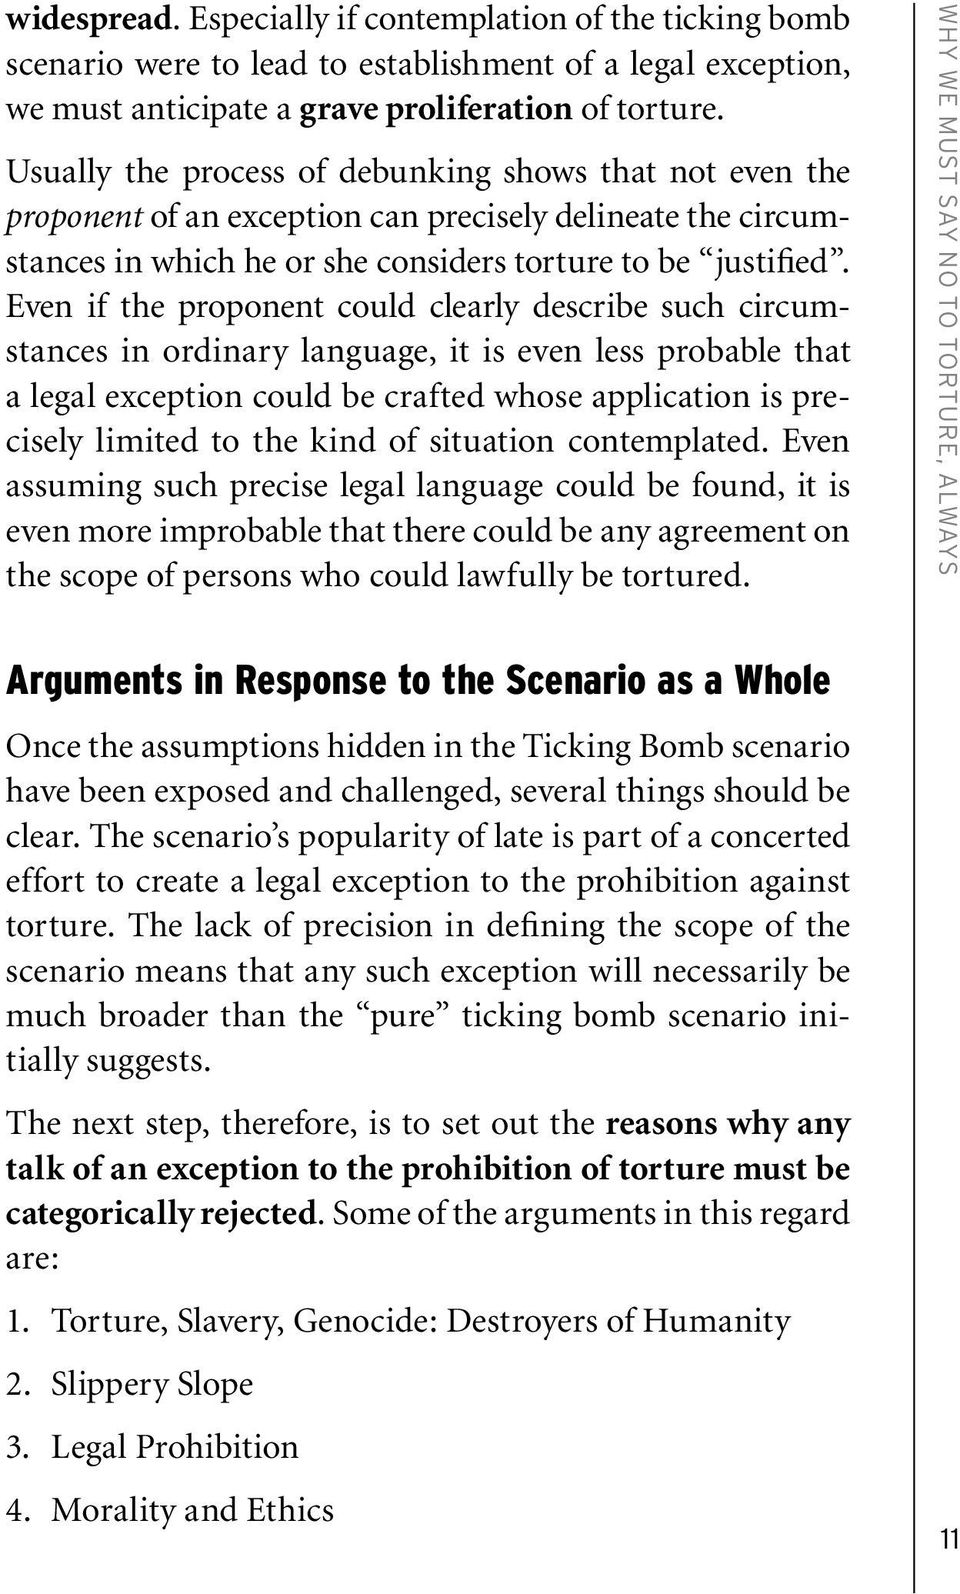 Even if the proponent could clearly describe such circumstances in ordinary language, it is even less probable that a legal exception could be crafted whose application is precisely limited to the